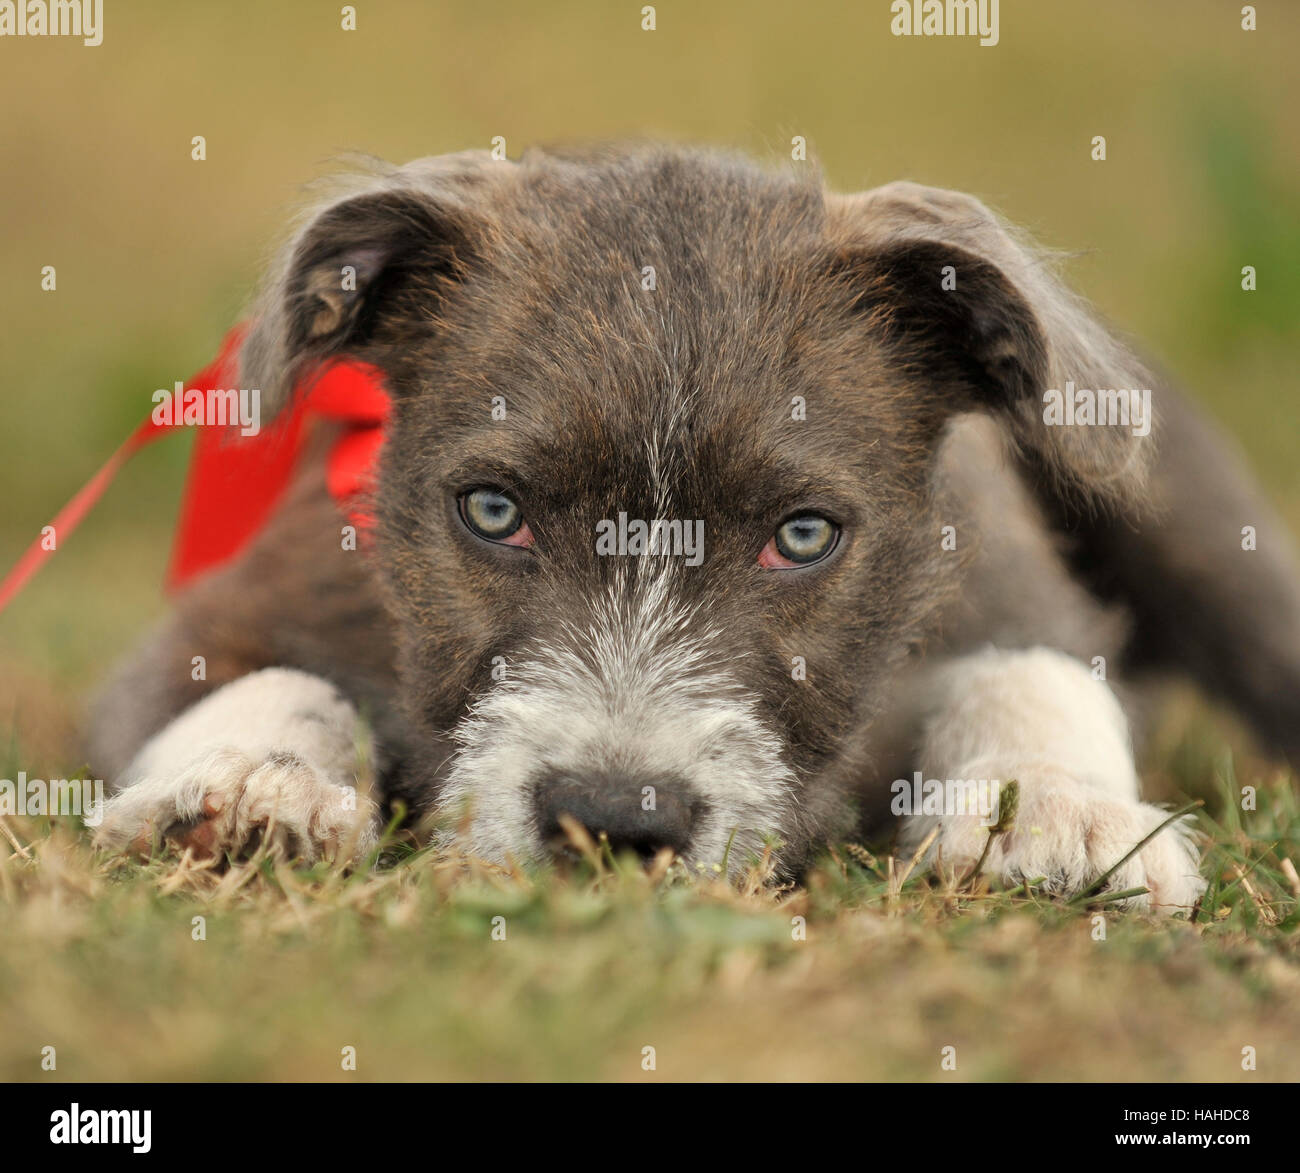 Staff Bull Terrier X Jack Russell Puppy 14 Weeks Stock Photo